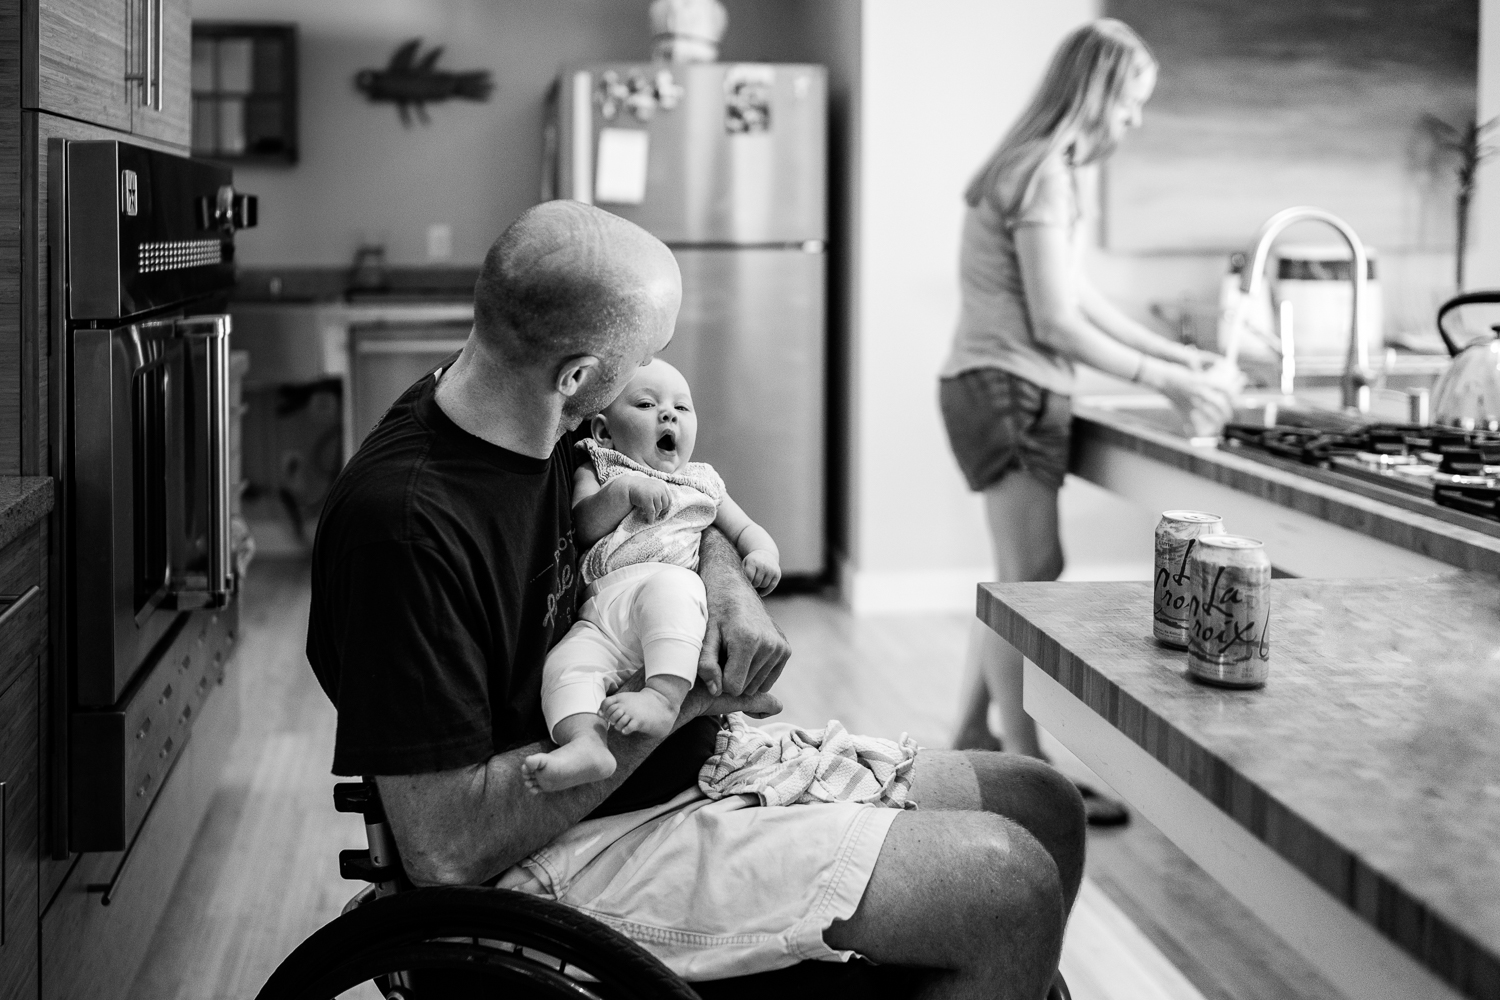 father in wheelchair holding yawning baby while mom washes dishes